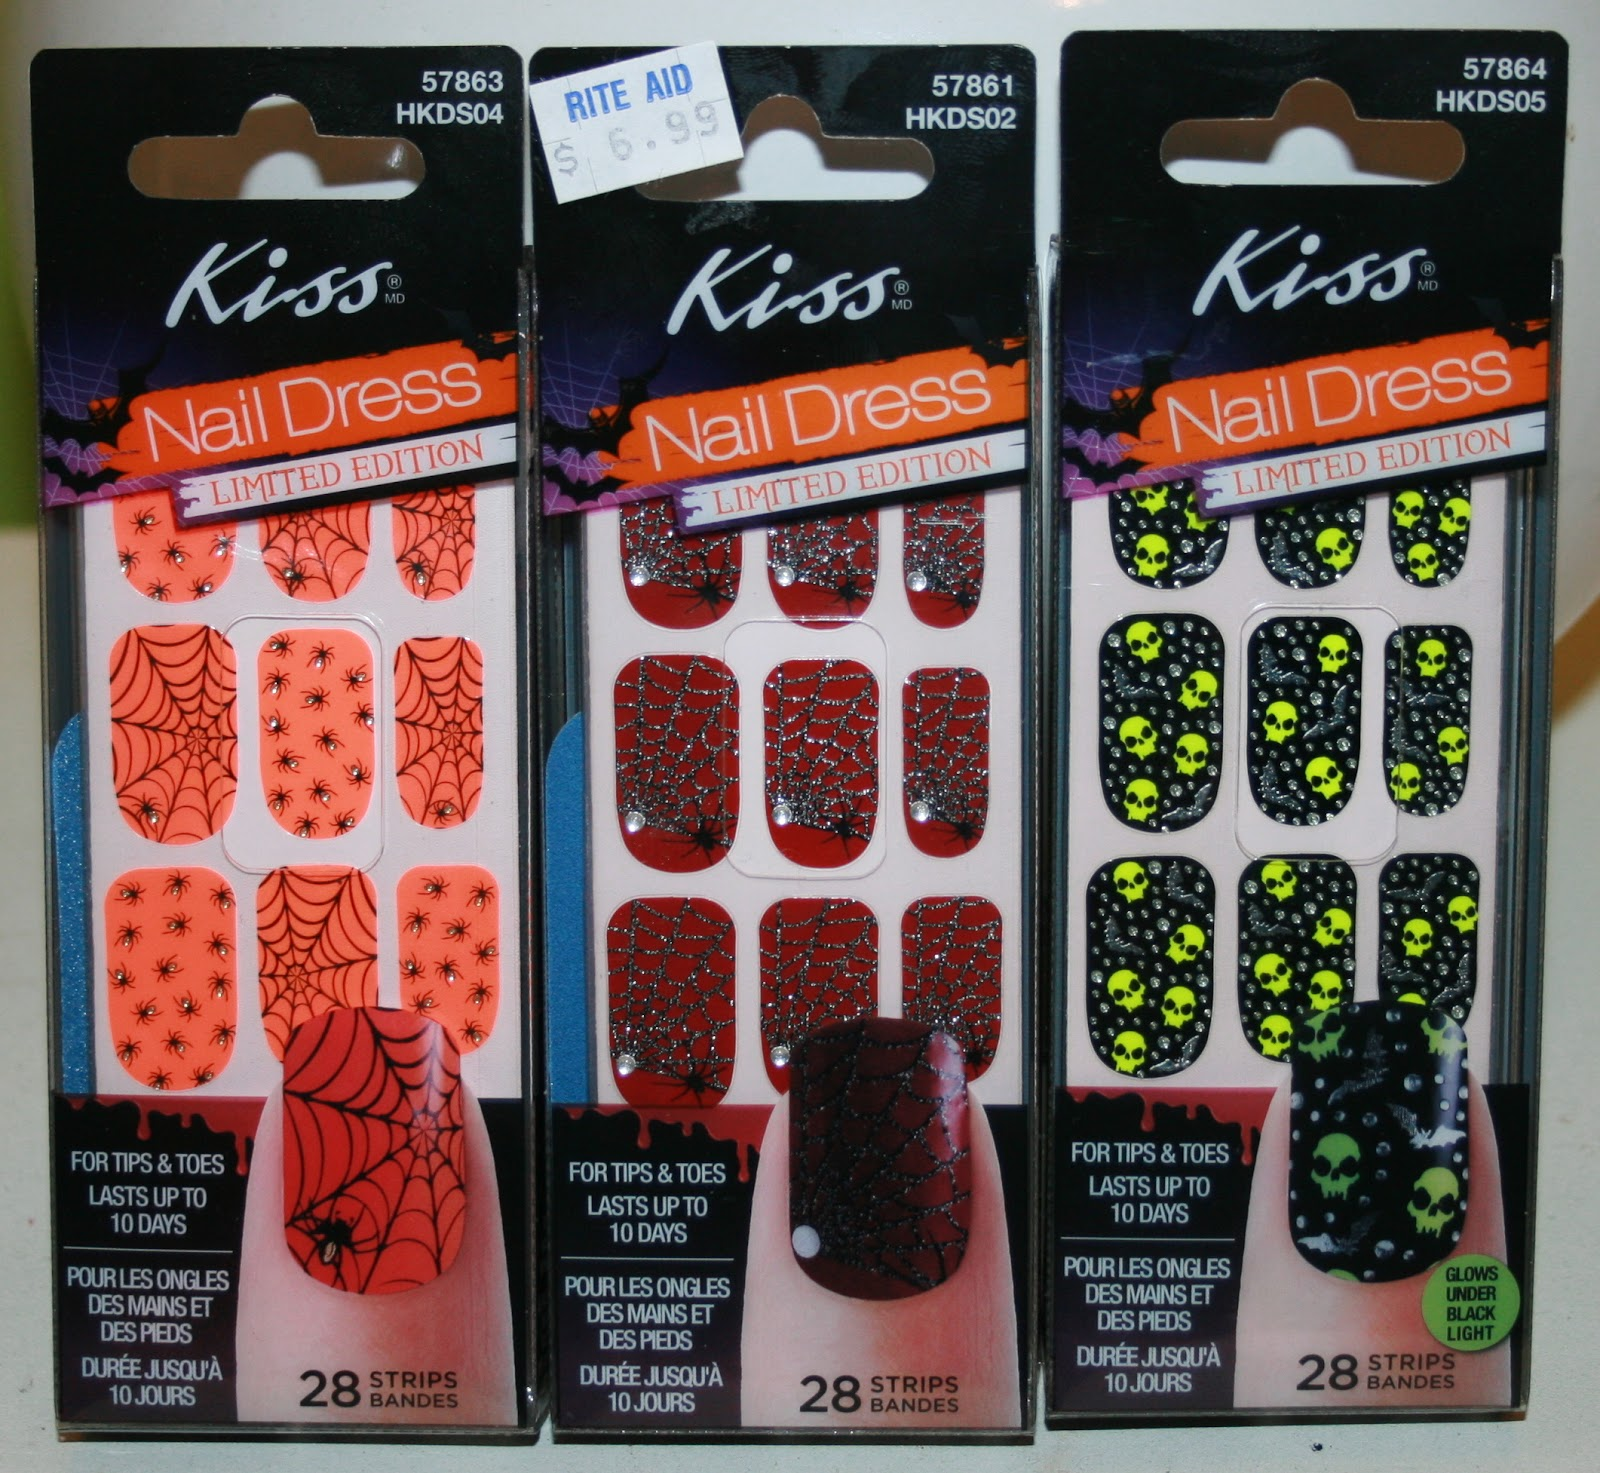 BeautyScraps: Trick or Treat? Kiss Halloween Nail Dress Review